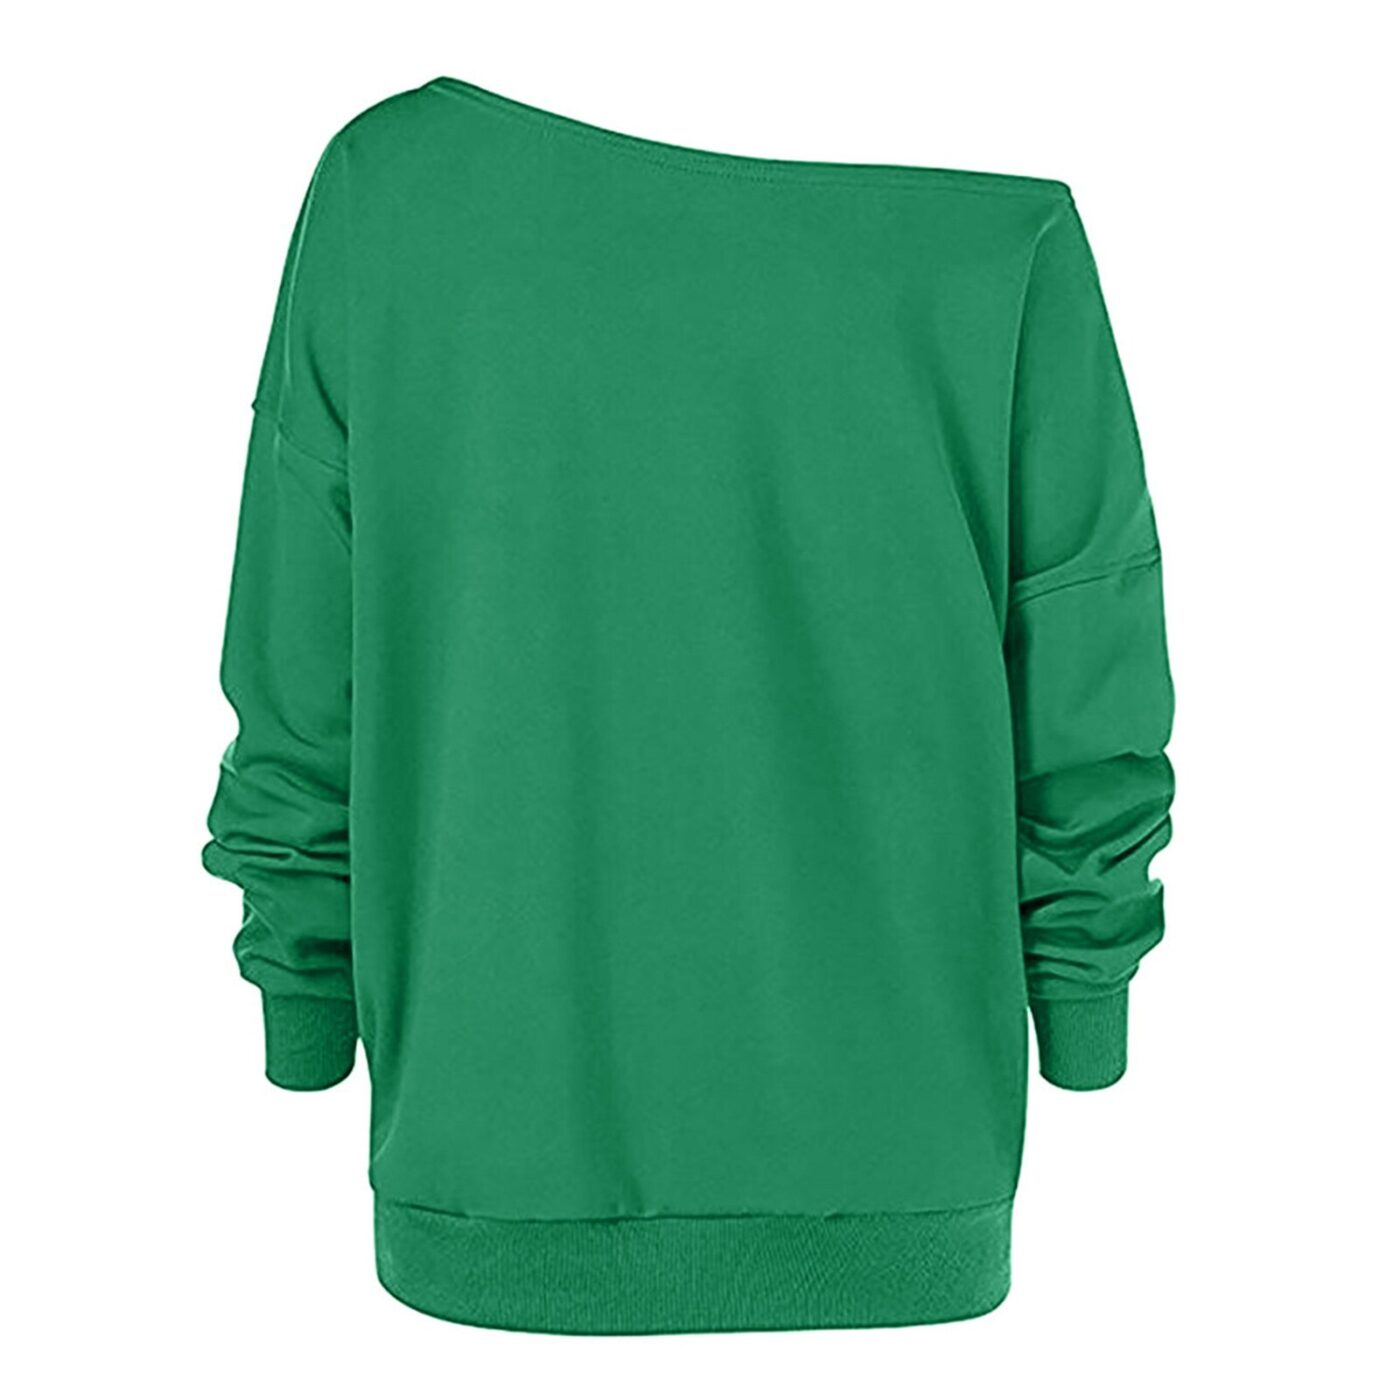 Shamrock Sweater for St. Patrick's Day